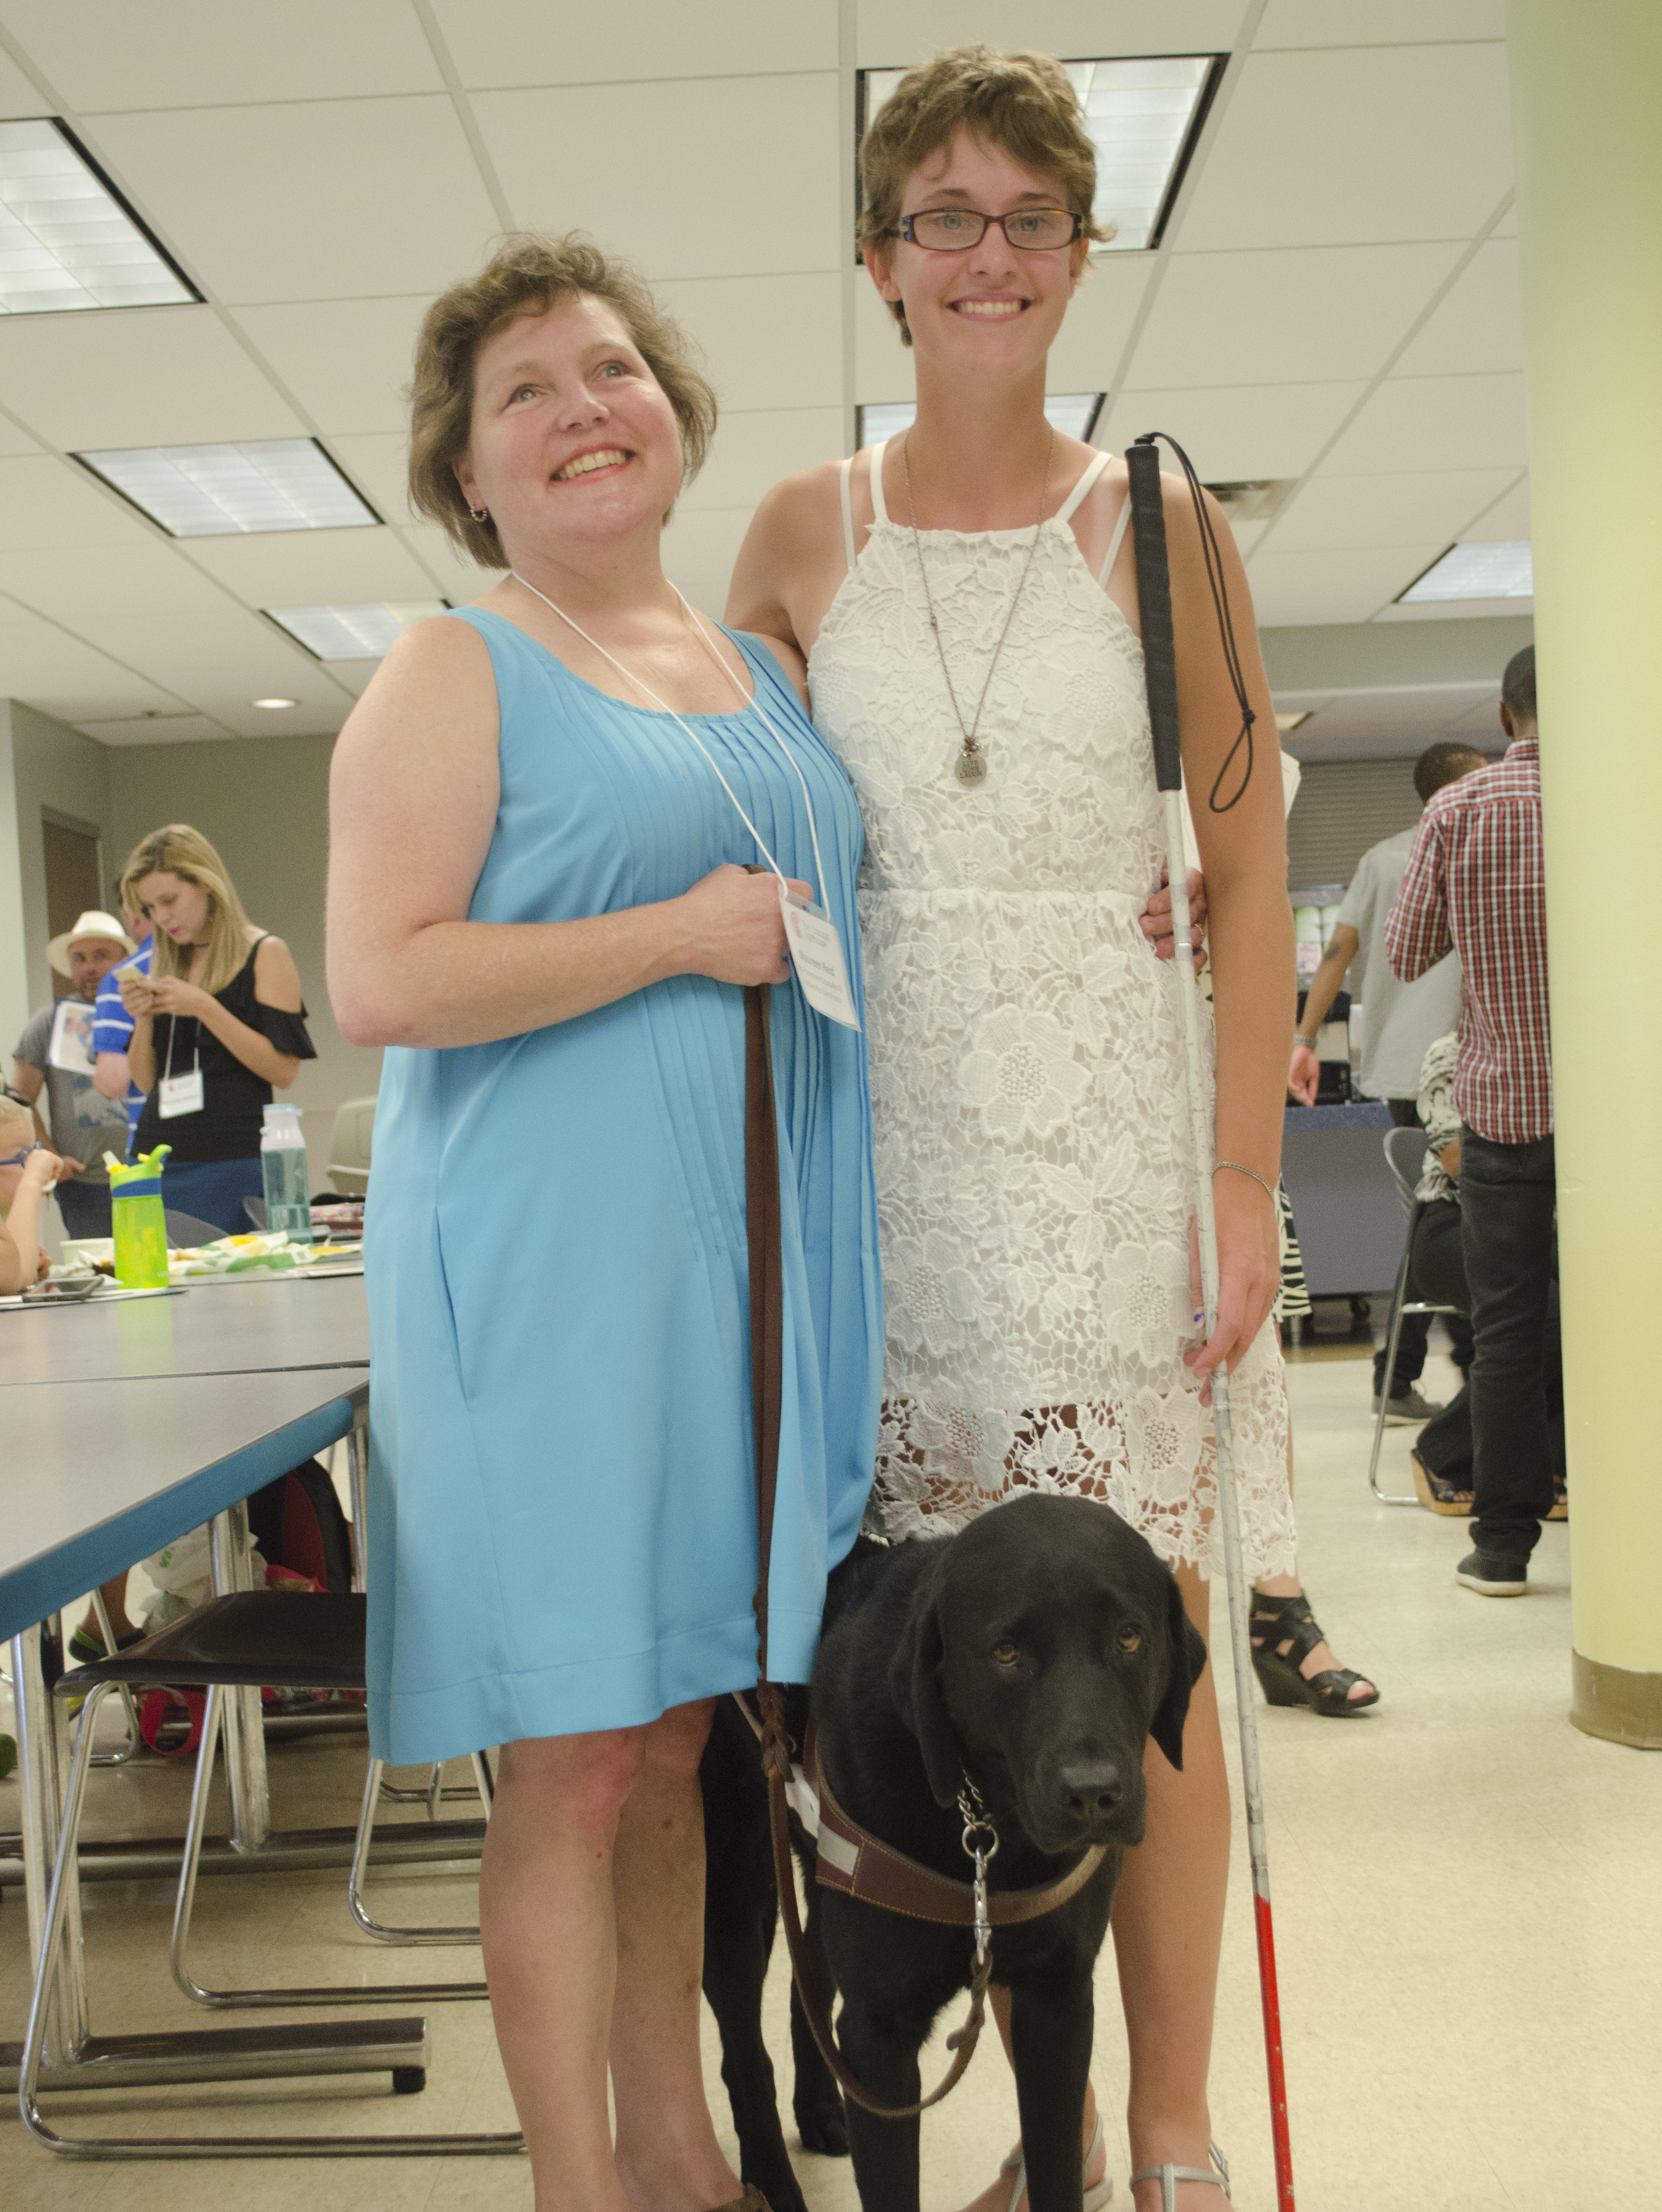 Scholarship Coordinator Maureen Reid and her guide dog Gaston smile alongside a scholar during our annual Scholarship Ceremony.